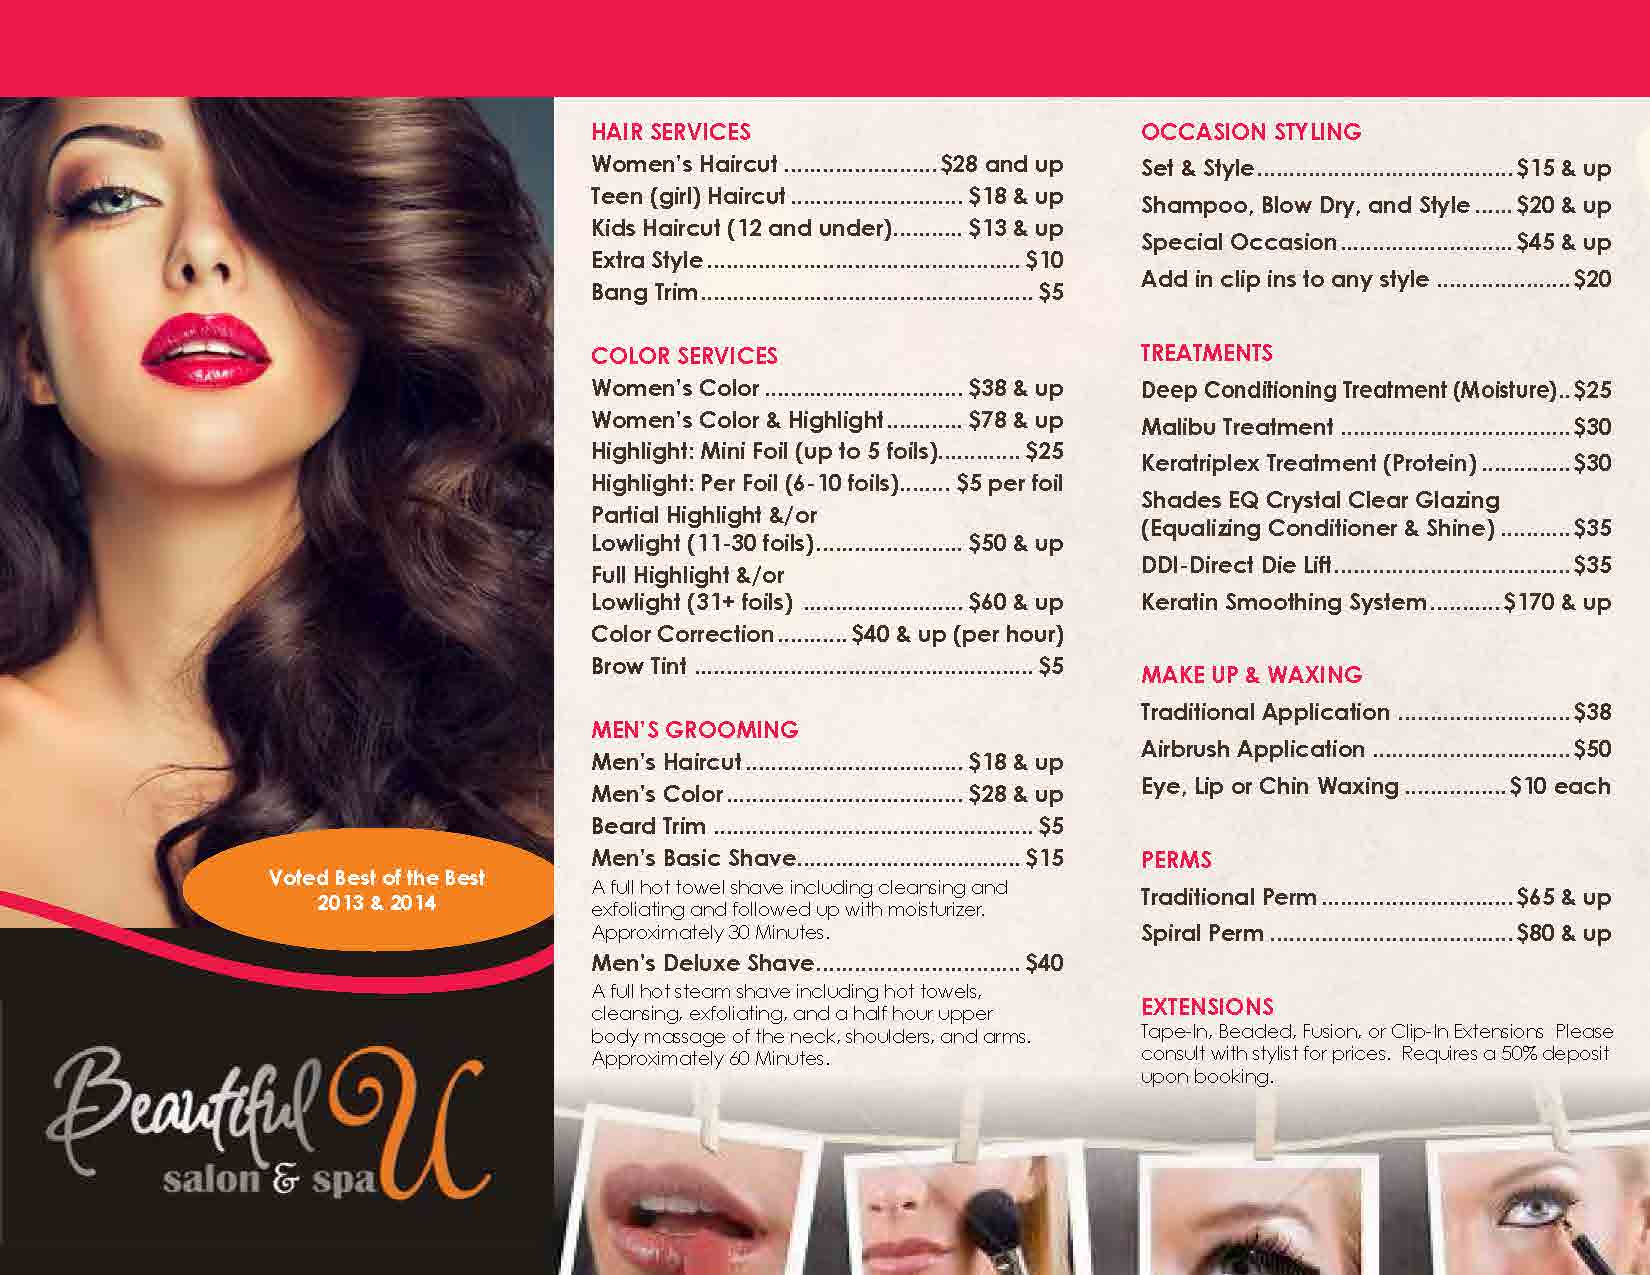 Lapeer salon beautiful u salon spa salon services trifold v2page1 salon services trifold v2page2 pmusecretfo Image collections